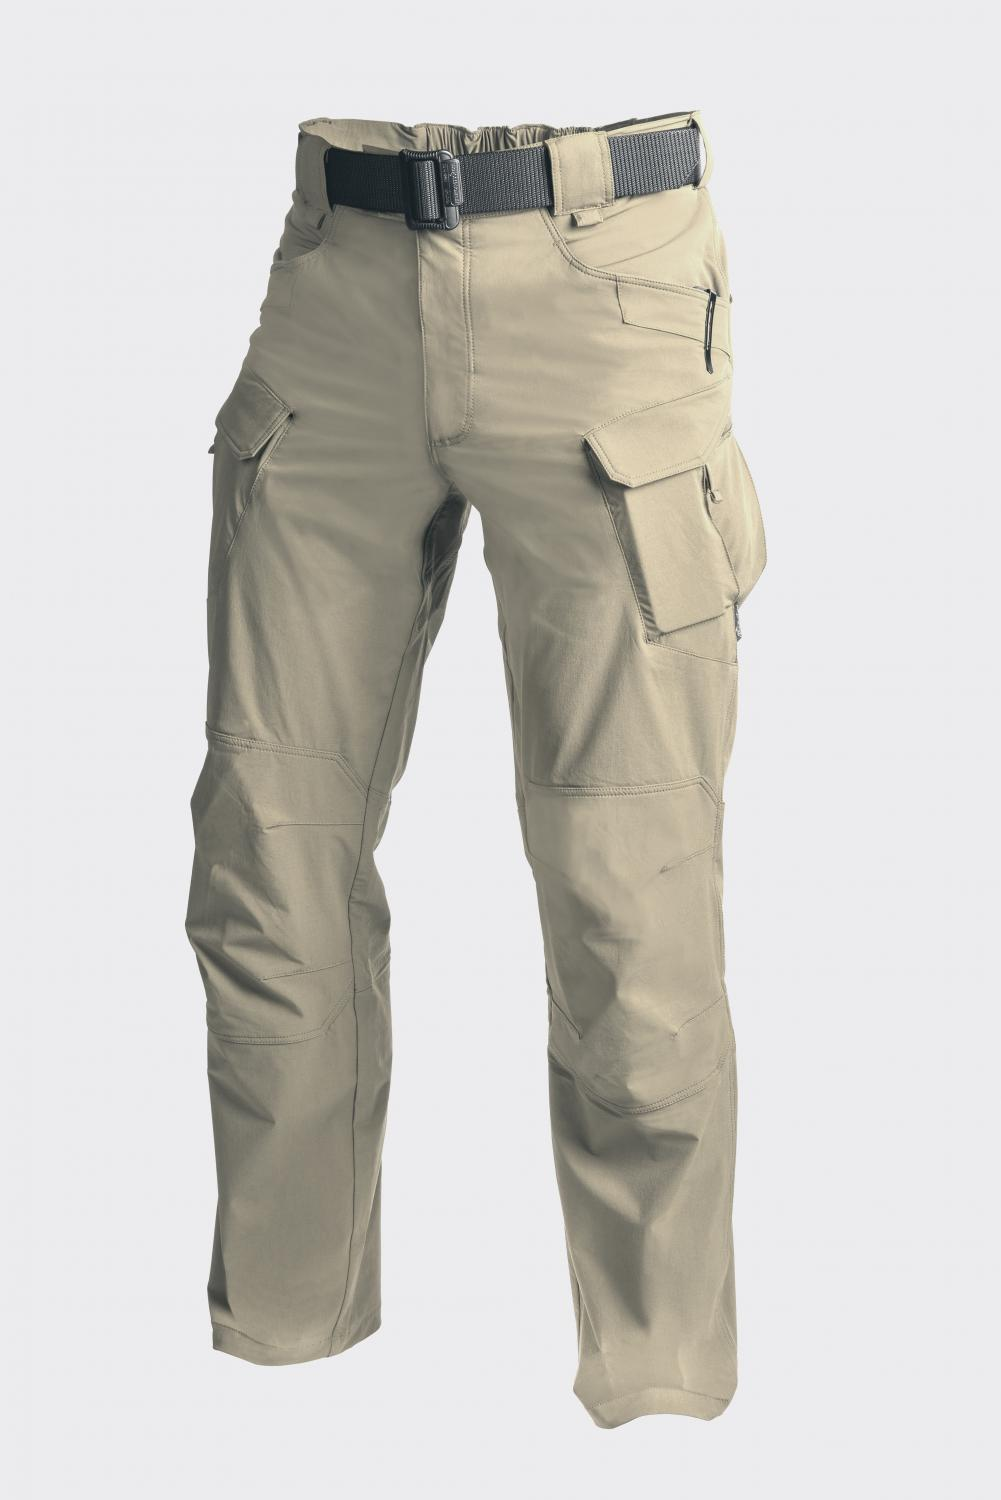 OUTDOOR TACTICAL PANTS - Nylon Khaki